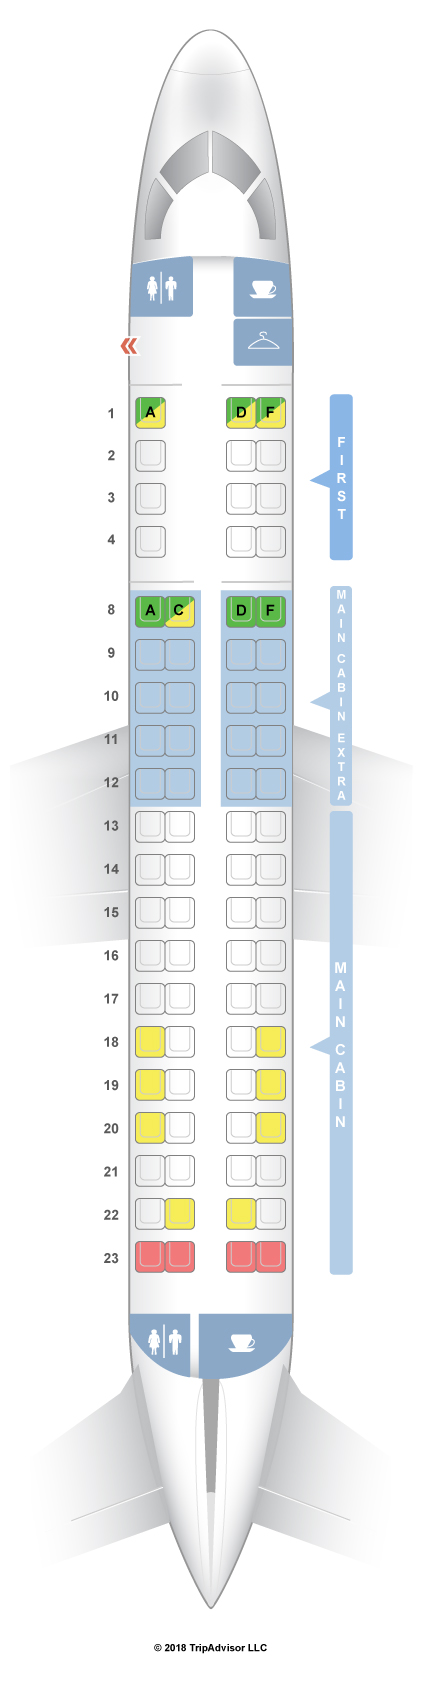 American airlines seat assignment